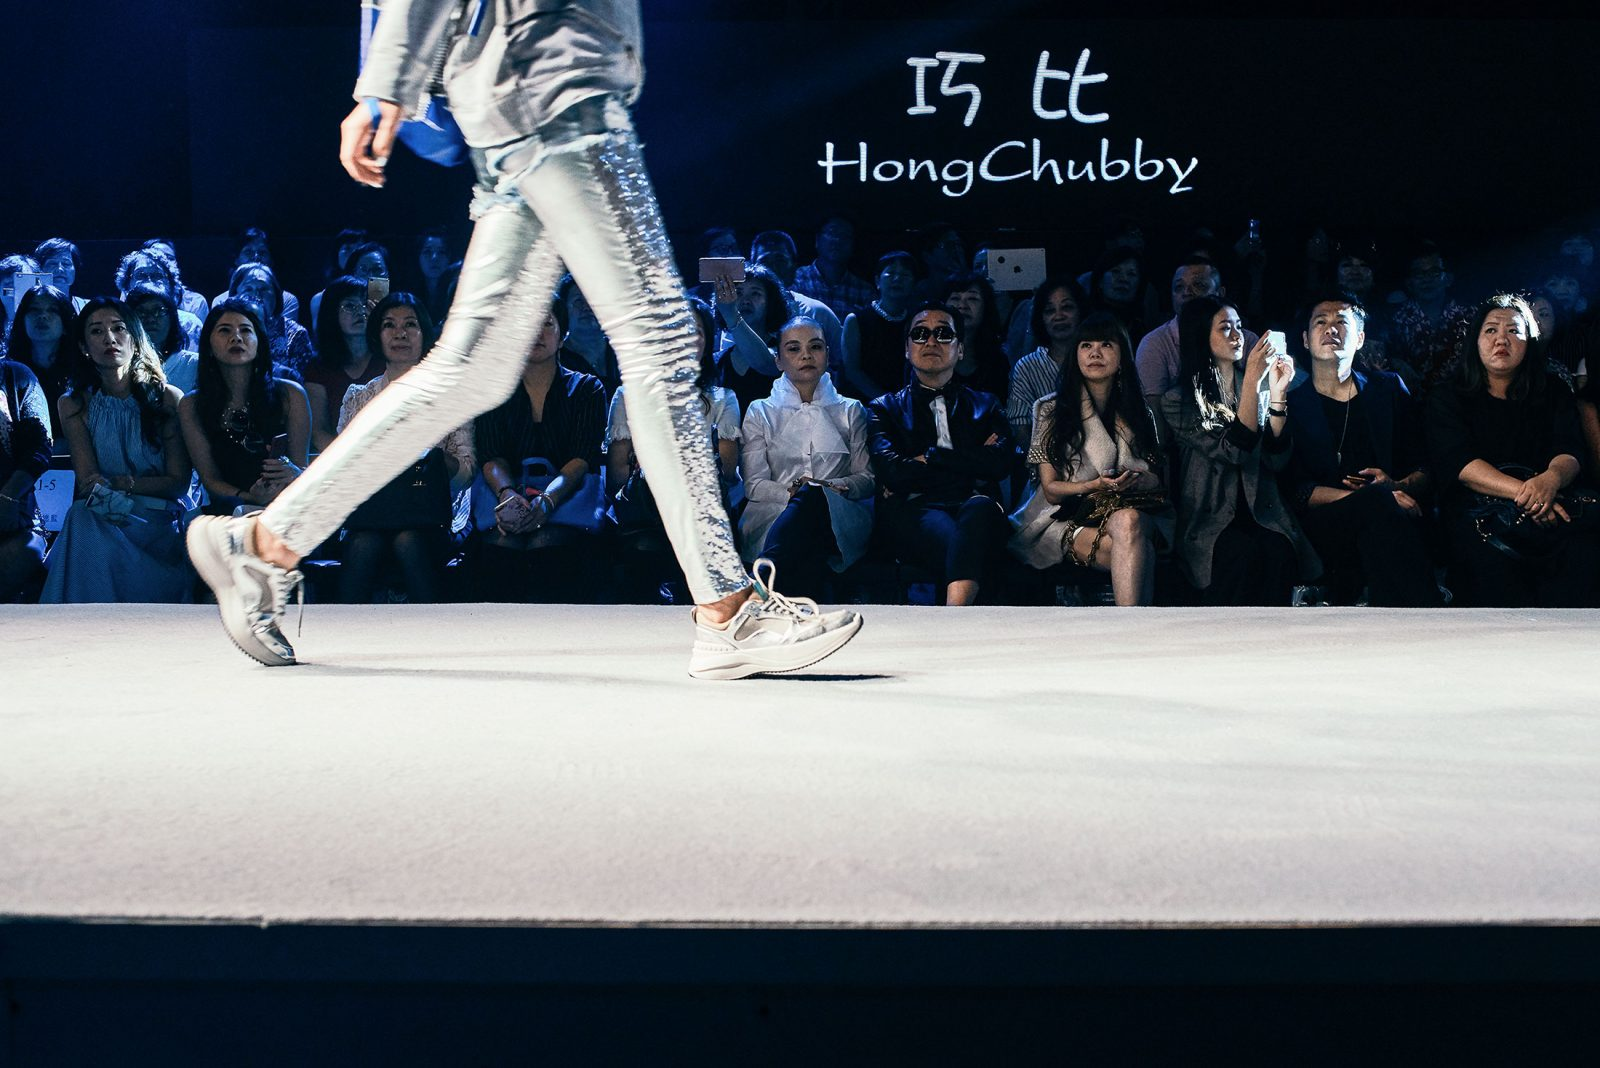 Hong Chubby from May Hsu by Cedric Paquet. (All image rights reserved by www.cedricpaquet.com)